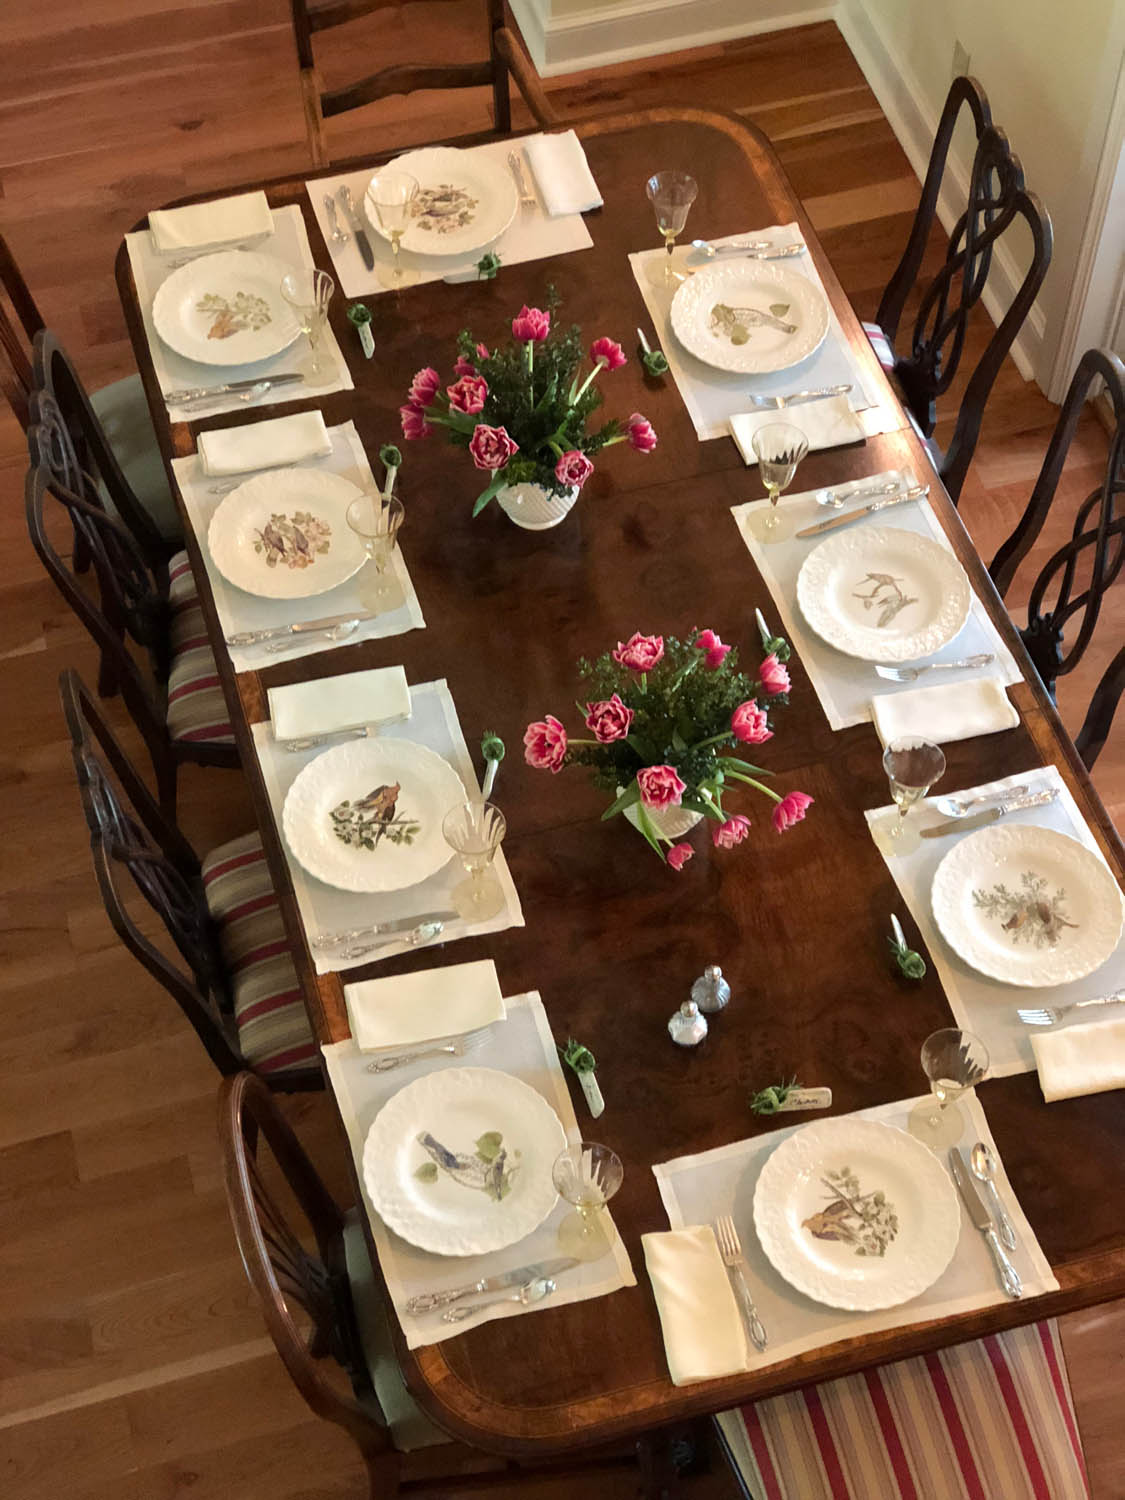 Overhead shot of dining table with china place settings for souther ladies lunch